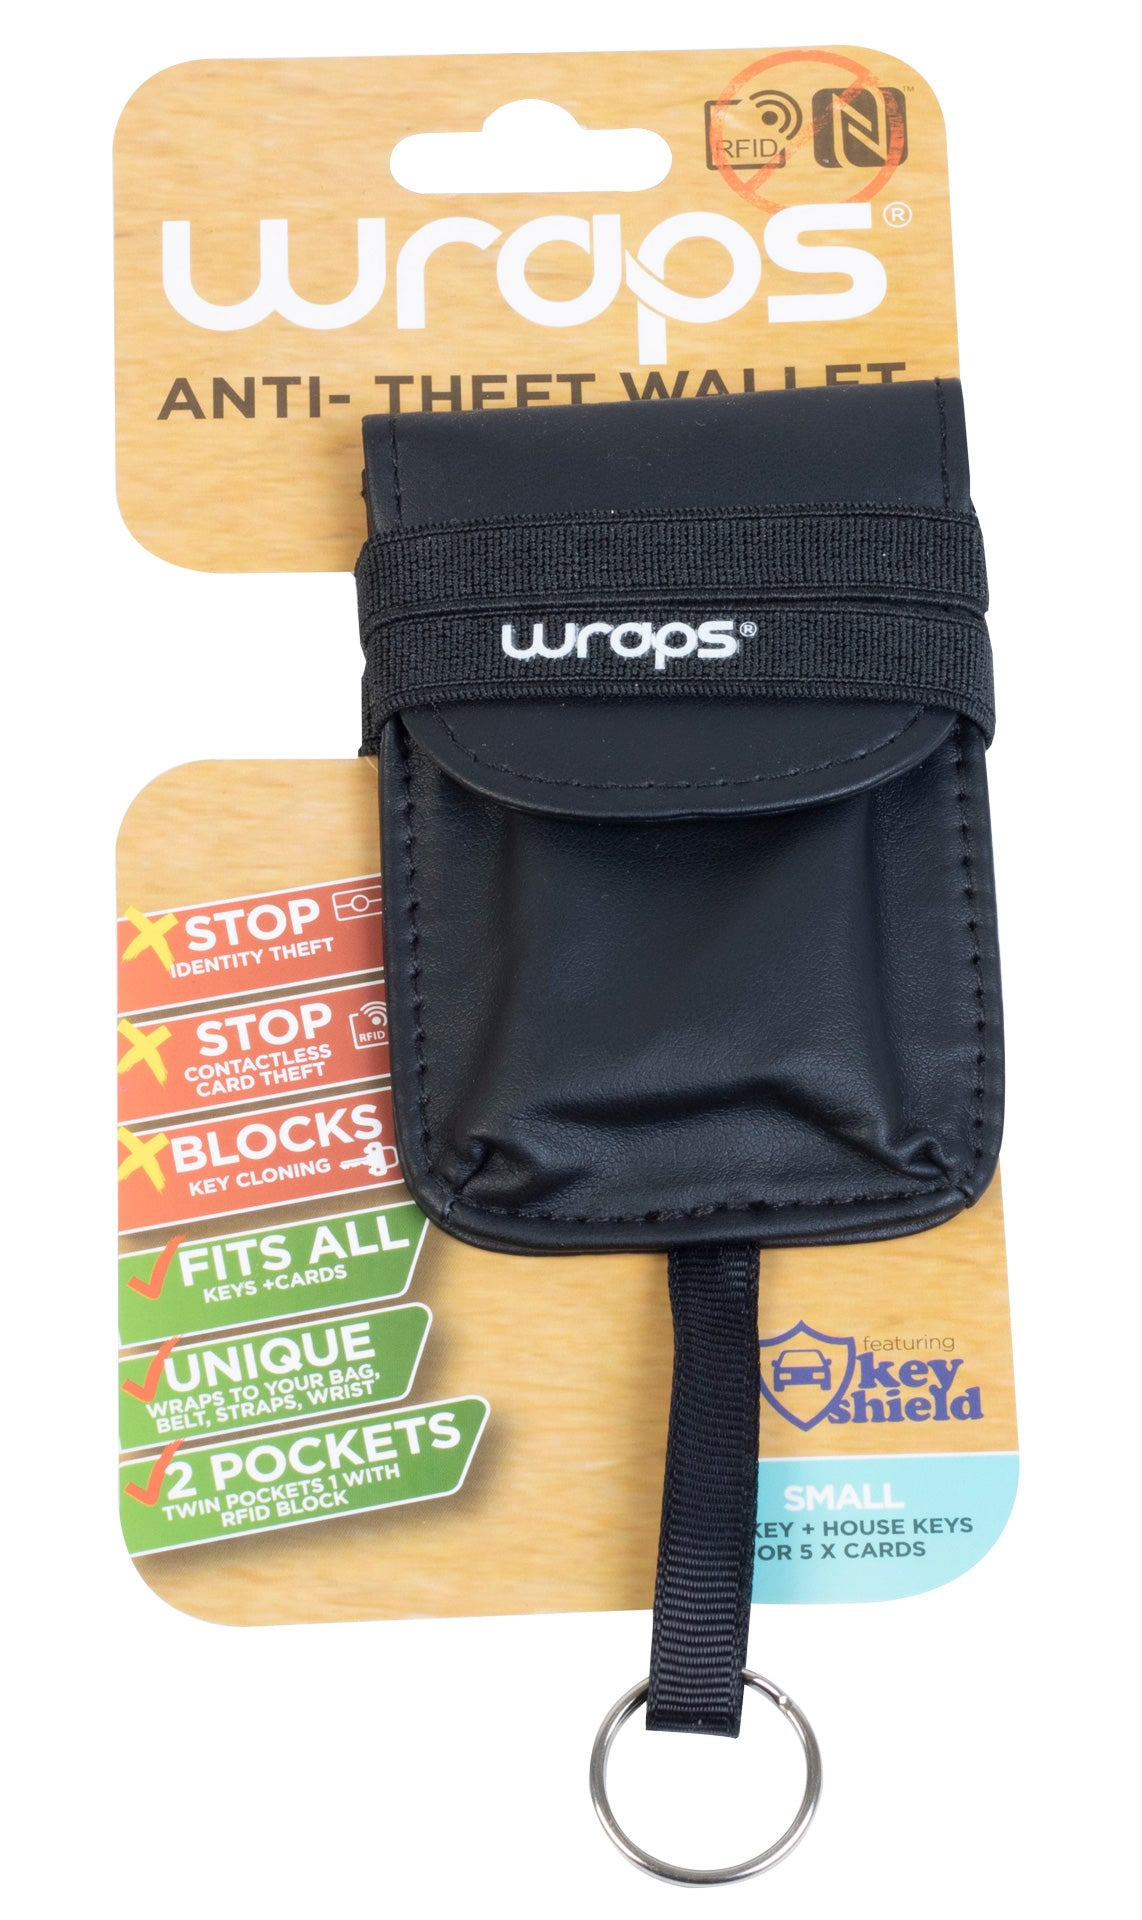 Wraps Anti-Theft Wallet Keyring